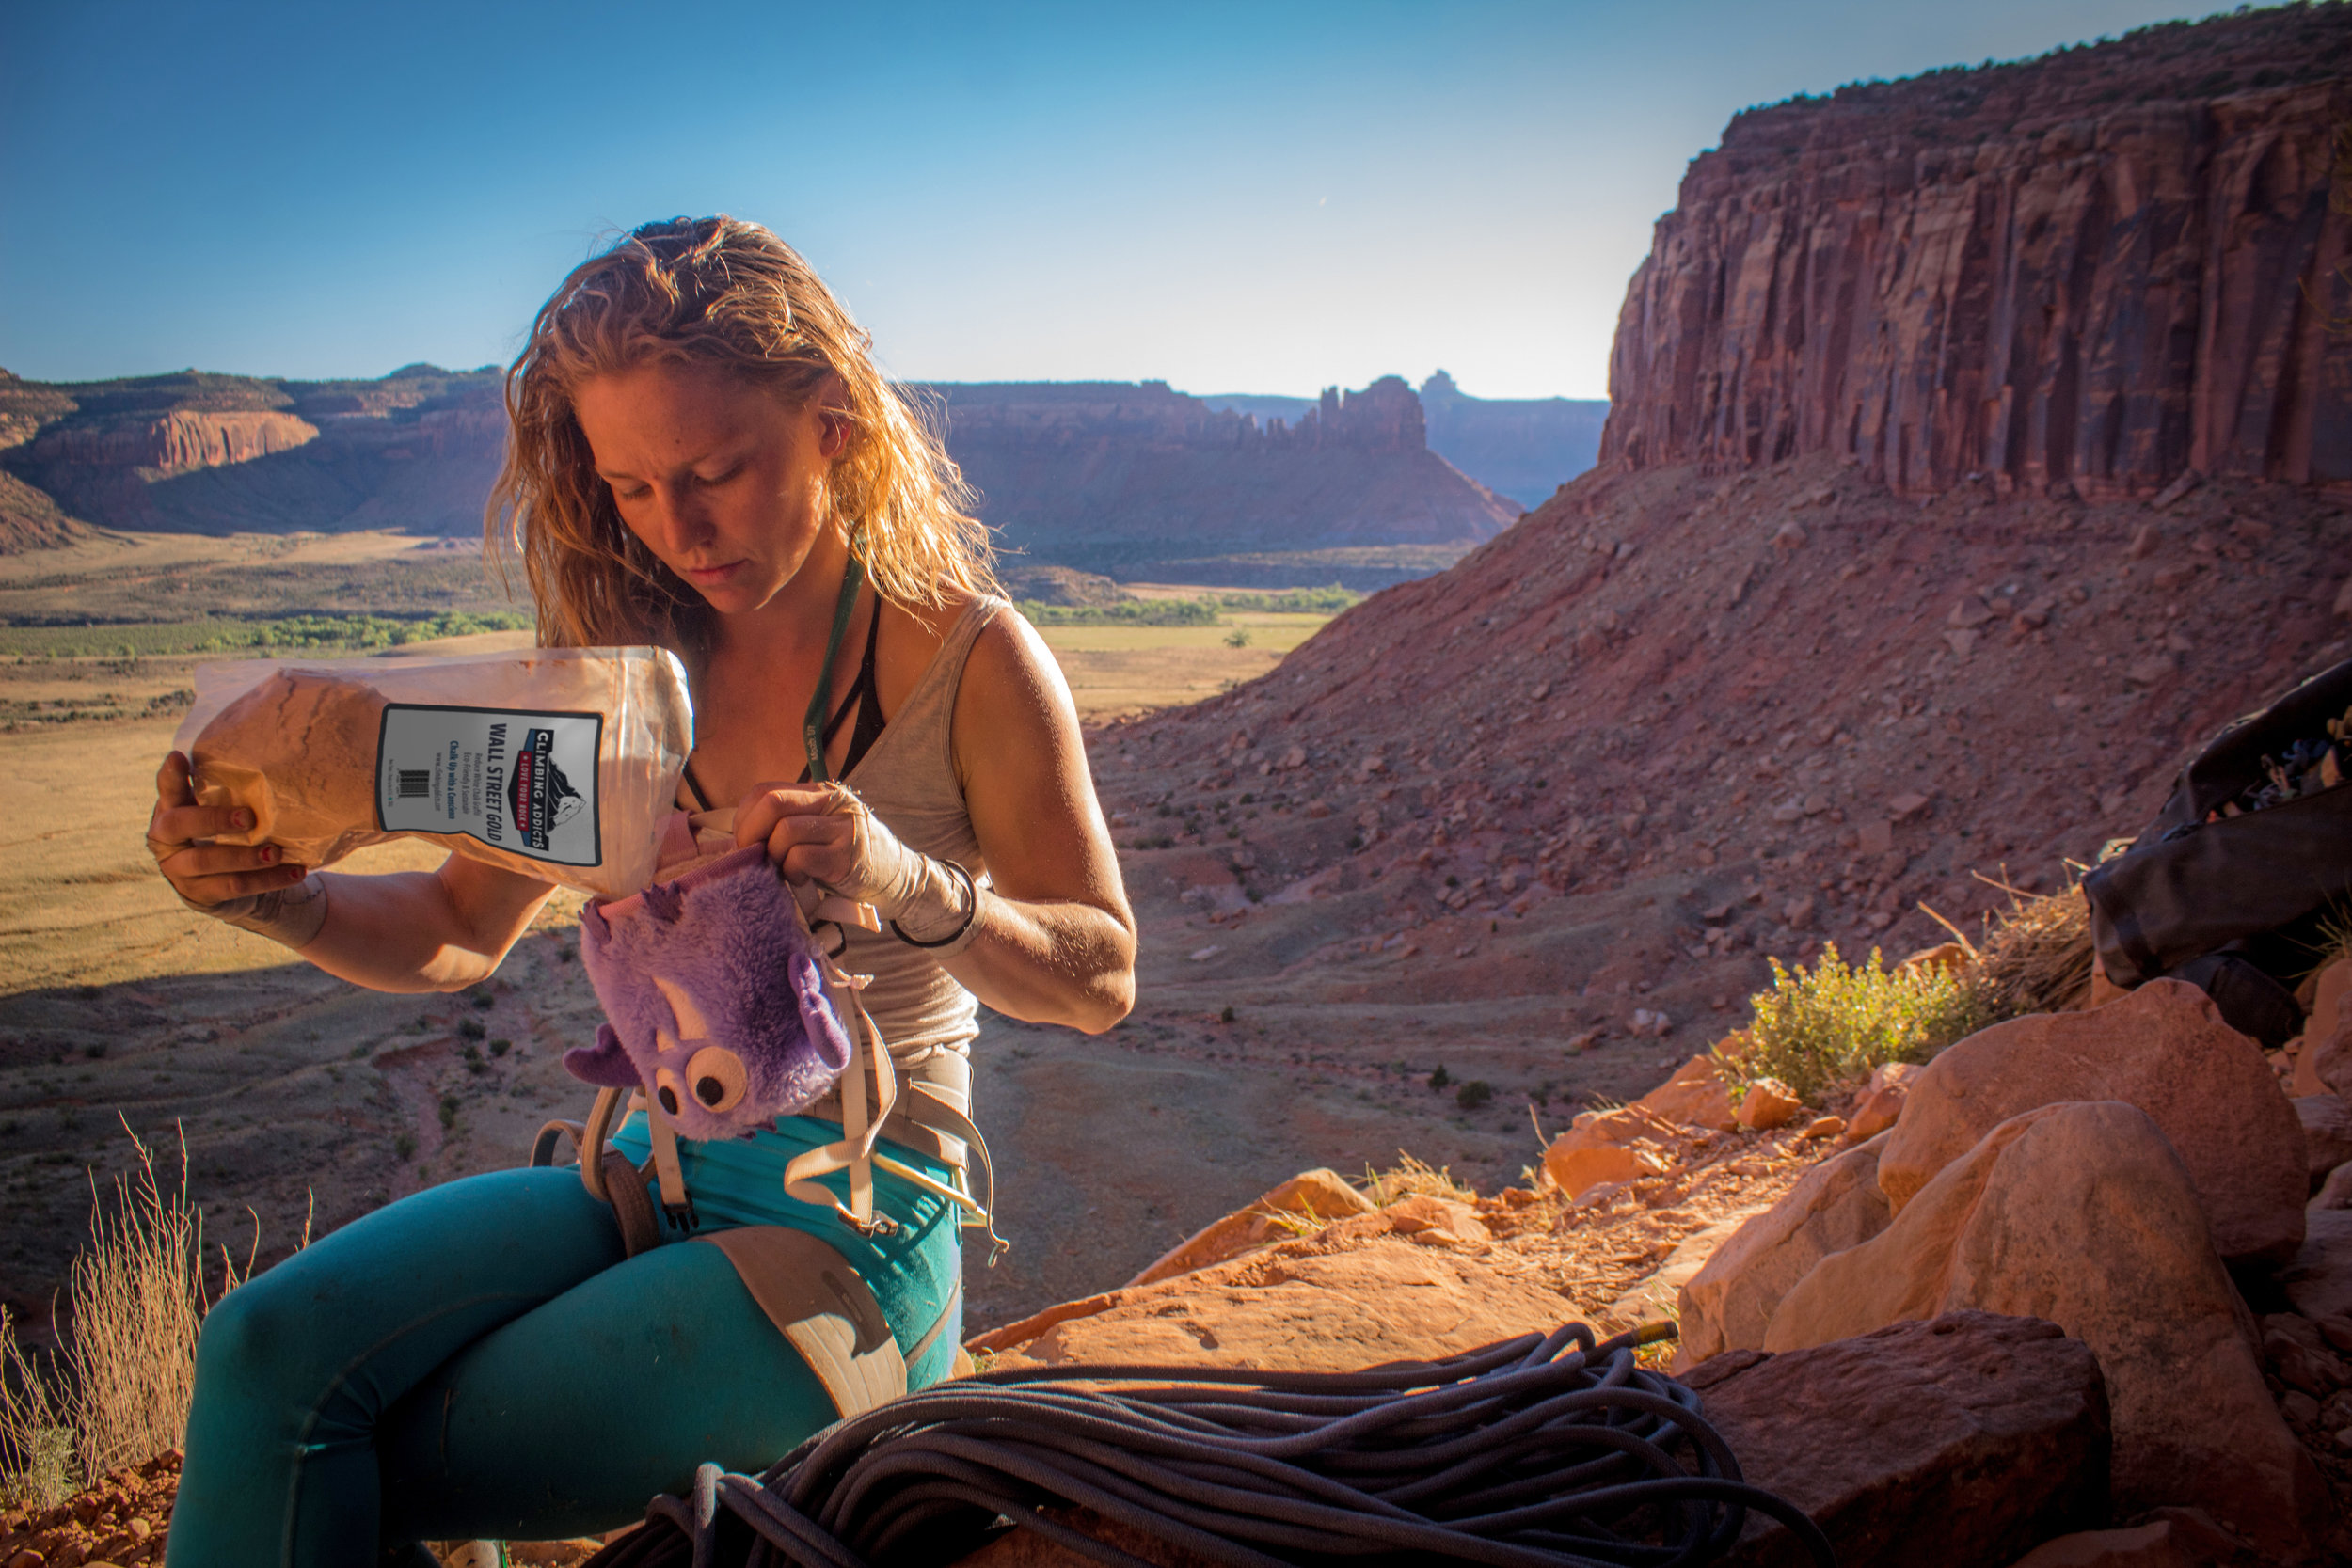 Climbers leave behind less chalk with Boulder-based Climbing Addicts chalk